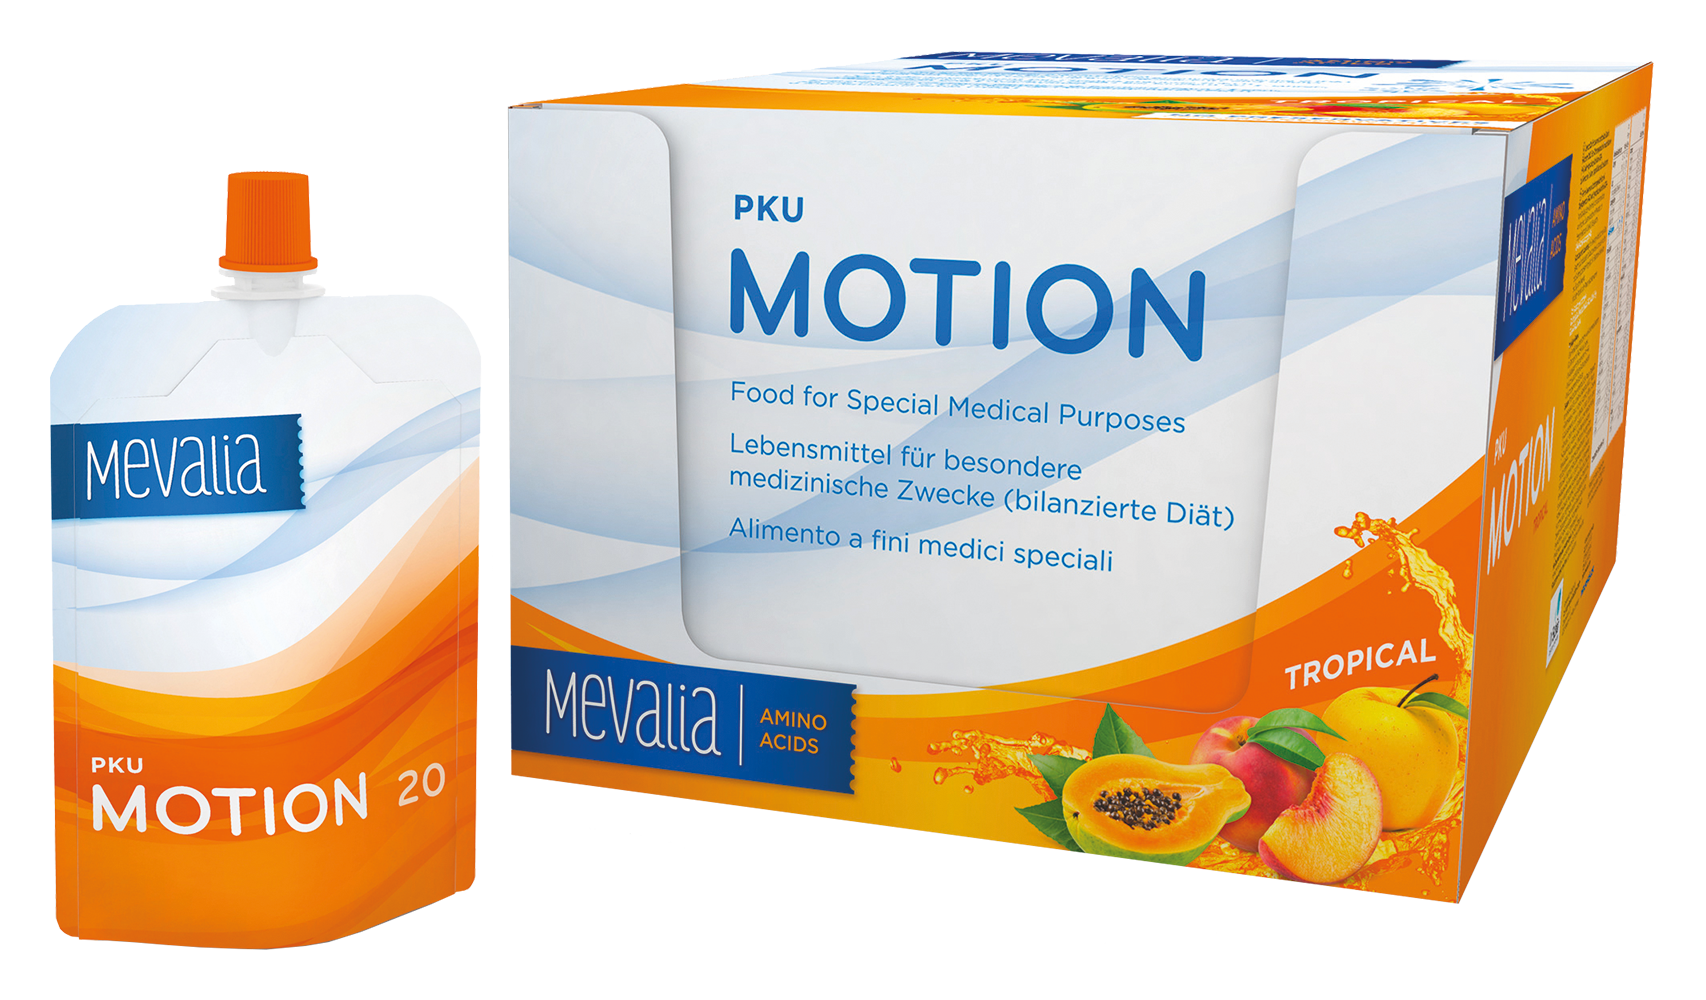 Mevalia PKU Motion Tropical